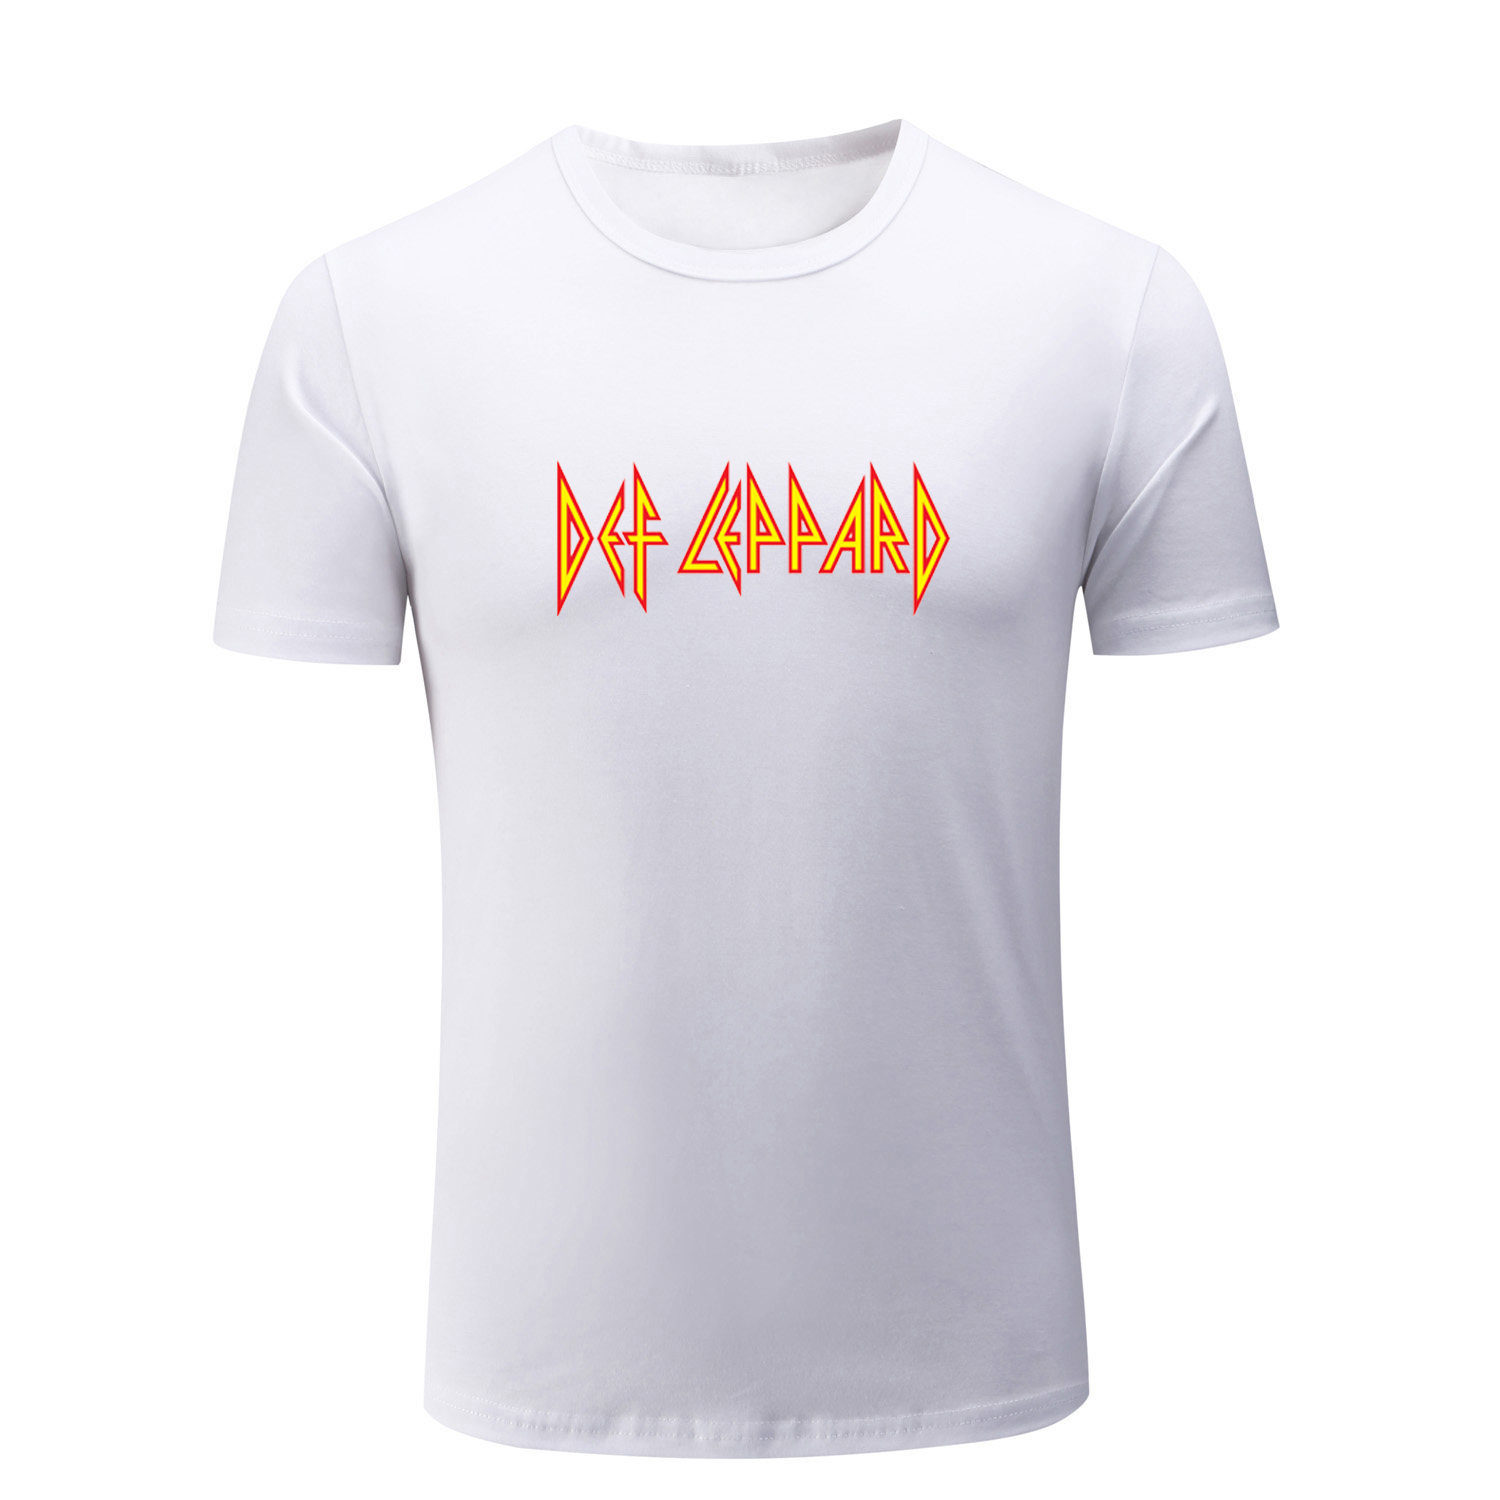 Def Leppard Hard Rock Band Summer Short Sleeve T Shirt Men's Women's Boys Girls T-shirt Multi Color Cotton Tops Fashion Clothing image